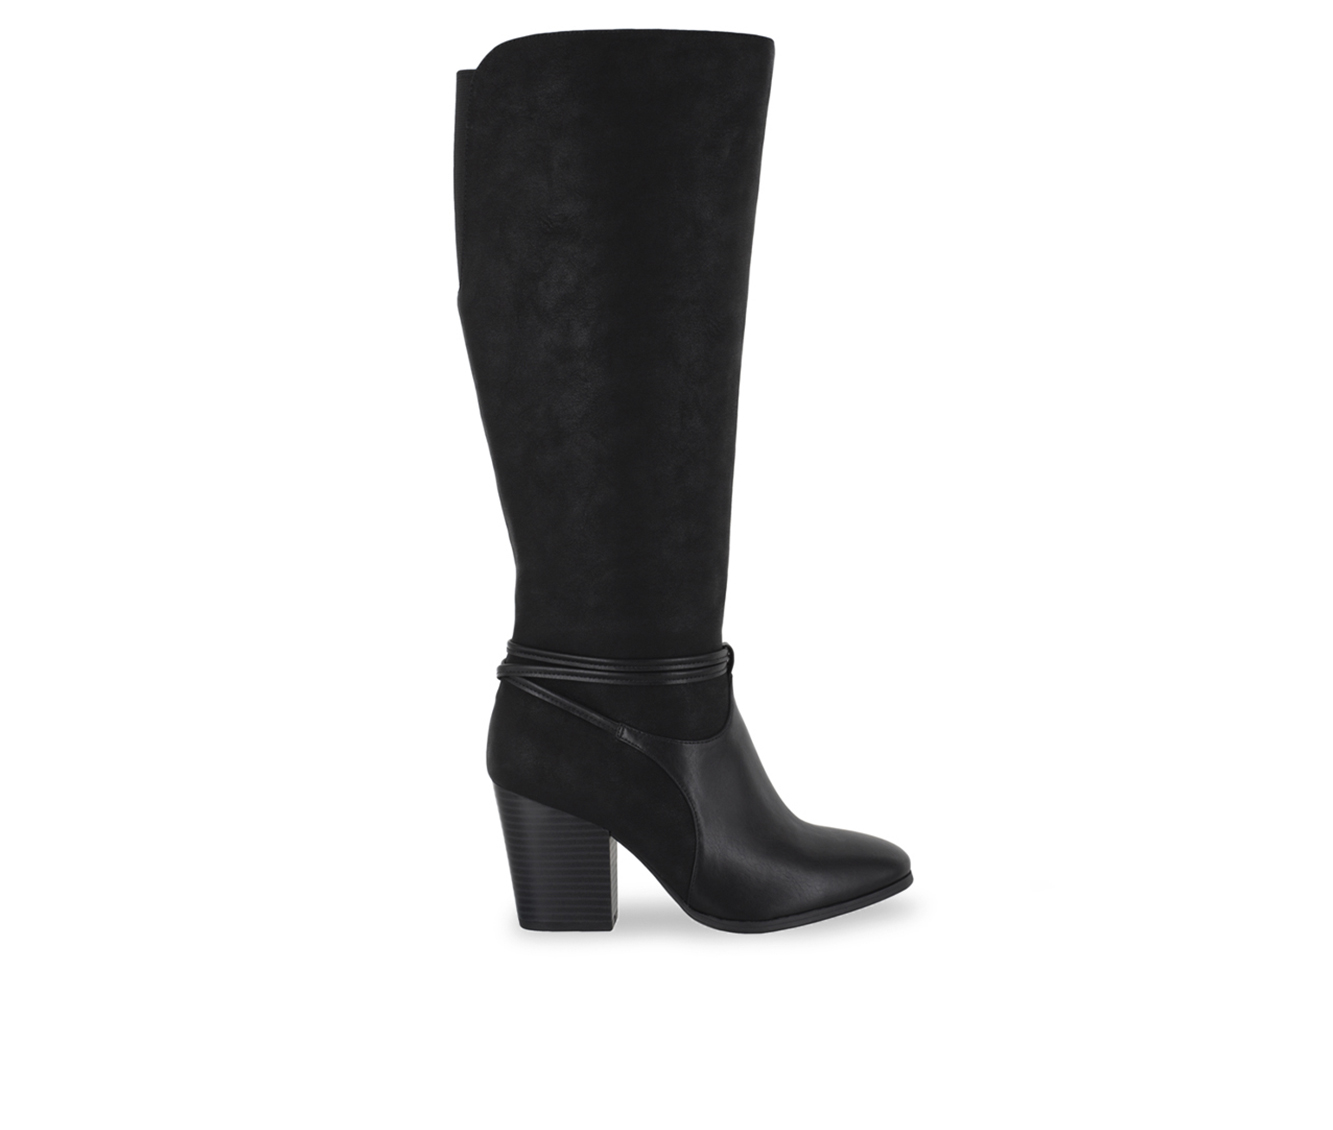 Easy Street Premium Women's Boot (Black Faux Leather)